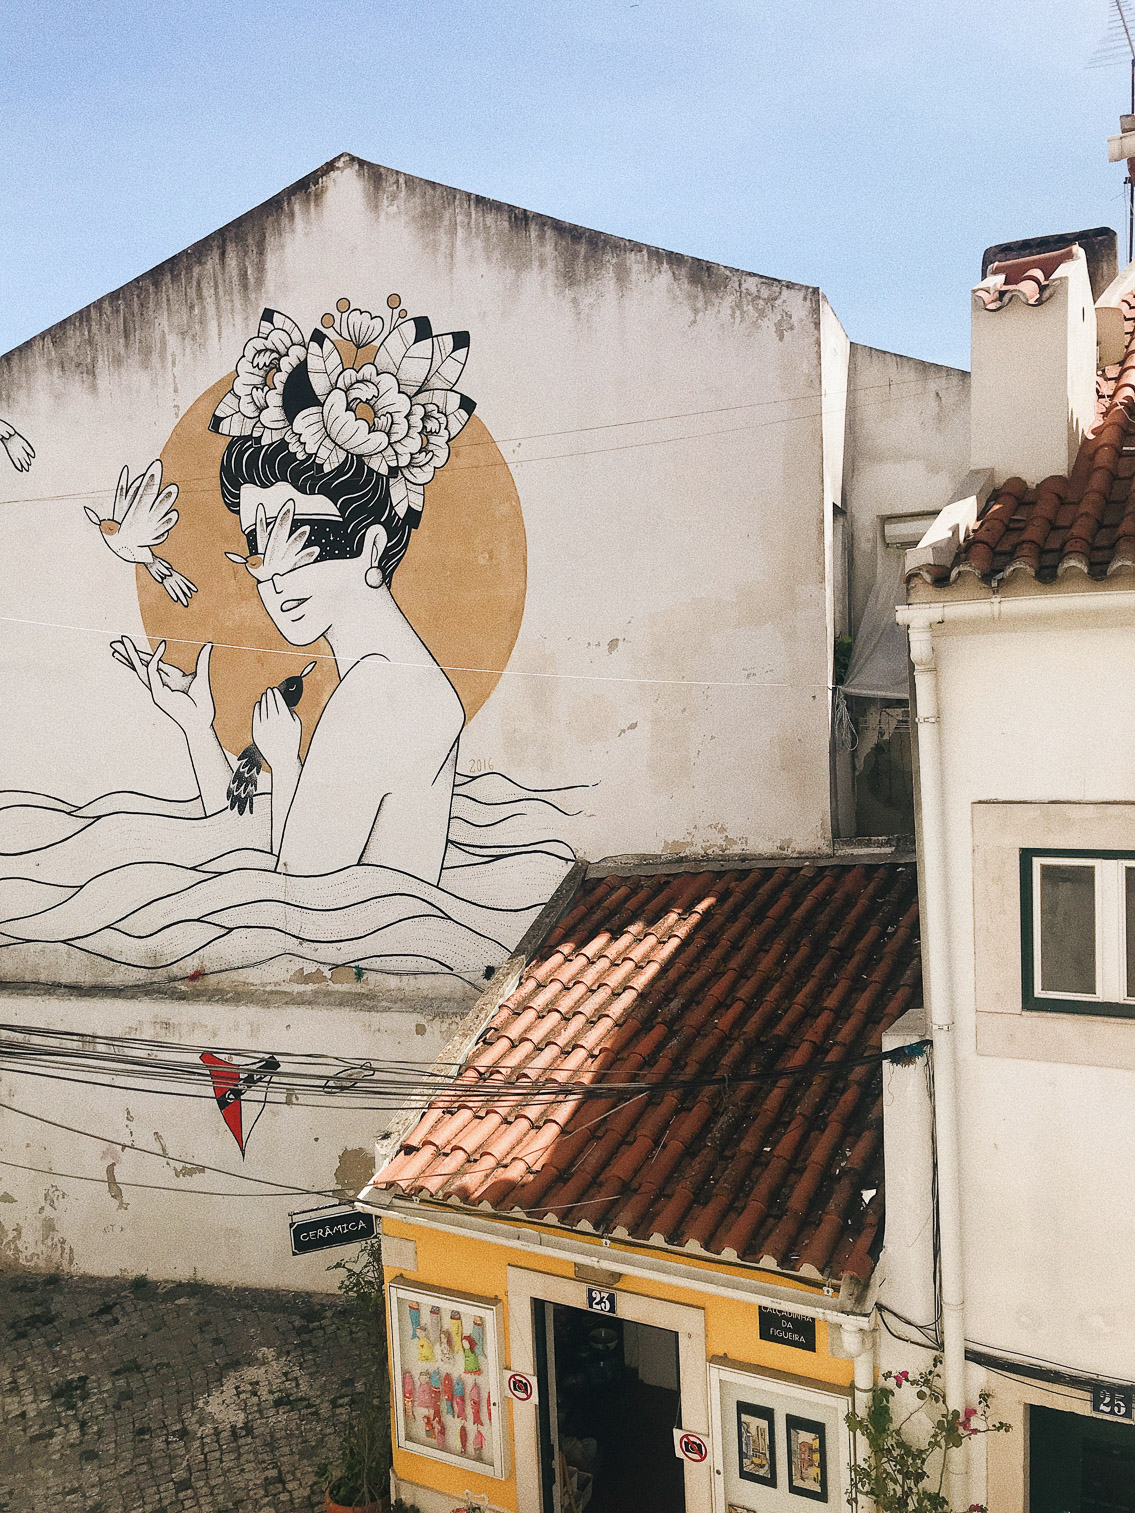 Lisboa - The cat, you and us